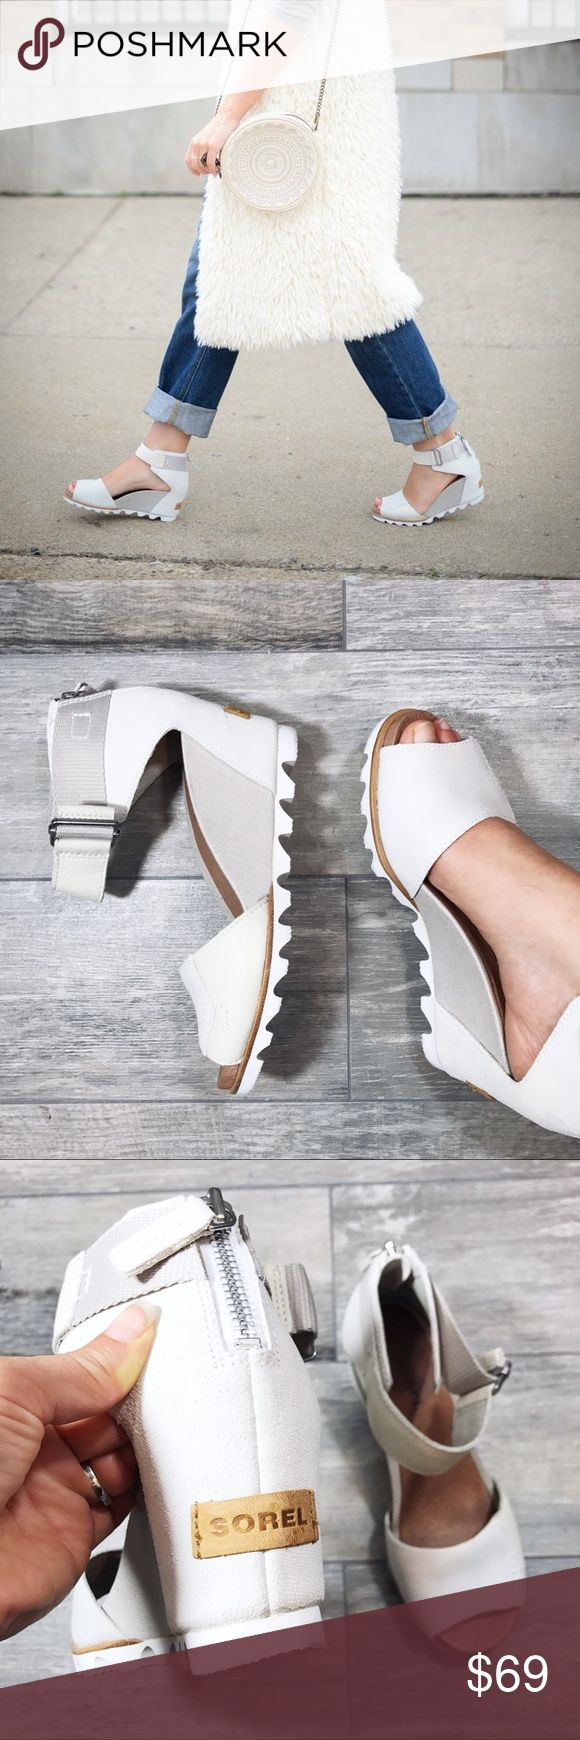 Sorel 'Jonie' Wedge Sandal in Stone Color Such a cool wedge with mixed textures- leather & canvas, Velcro strap & rubber wedge. They are in excellent condition & are SOLD OUT. The heel has some minor wear from storage (price reflects this), however they've never been worn. Sorel Shoes Wedges